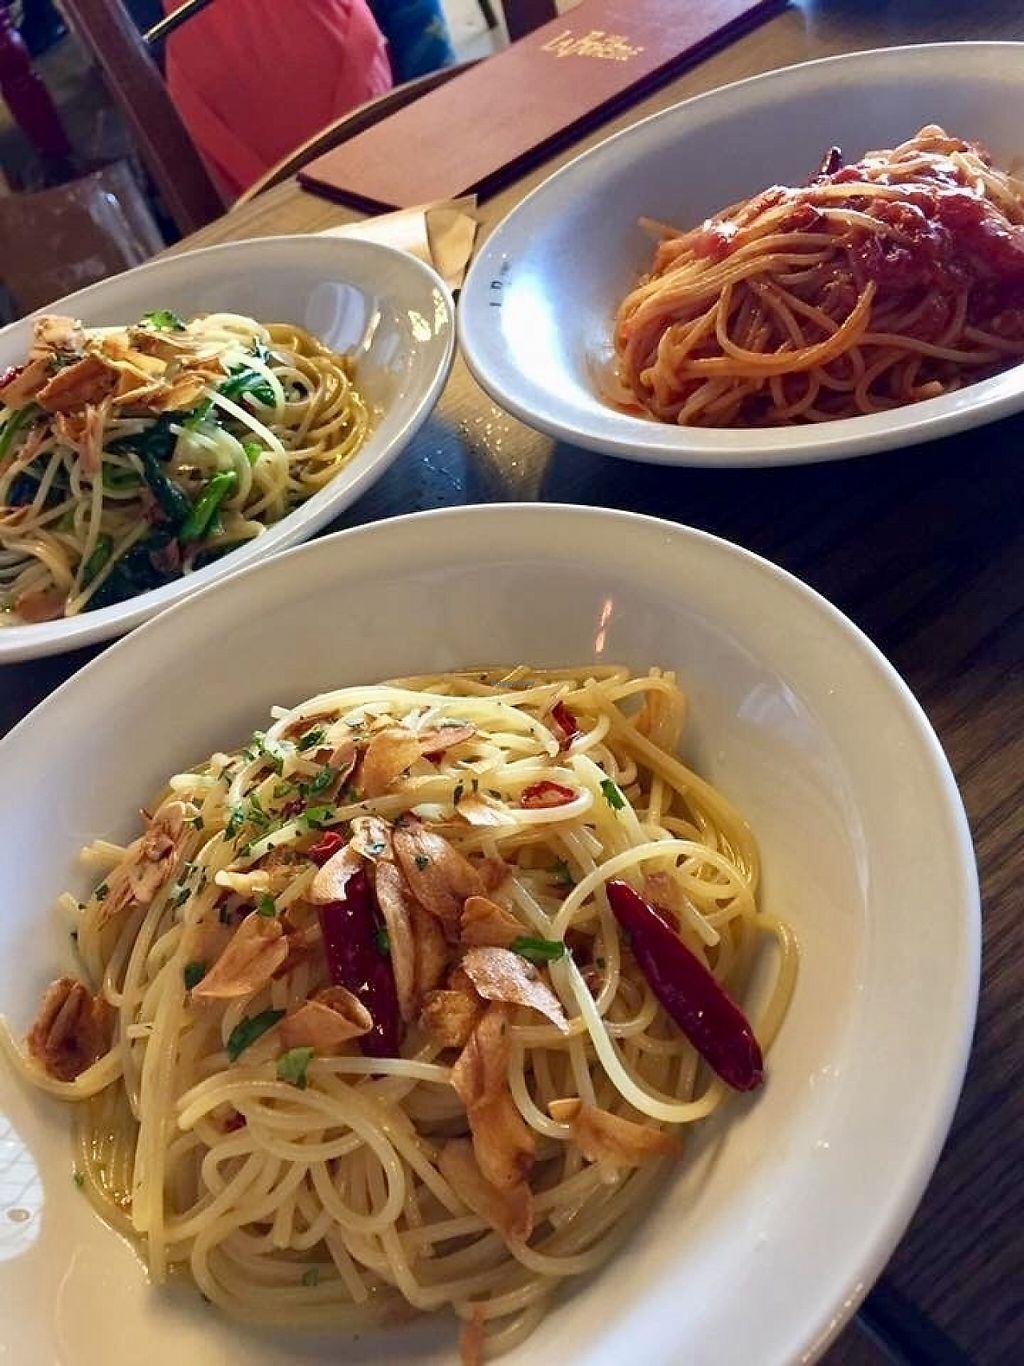 """Photo of Cafe La Boheme - Ginza  by <a href=""""/members/profile/paulkates"""">paulkates</a> <br/>Vegan pasta <br/> June 7, 2017  - <a href='/contact/abuse/image/93480/266522'>Report</a>"""